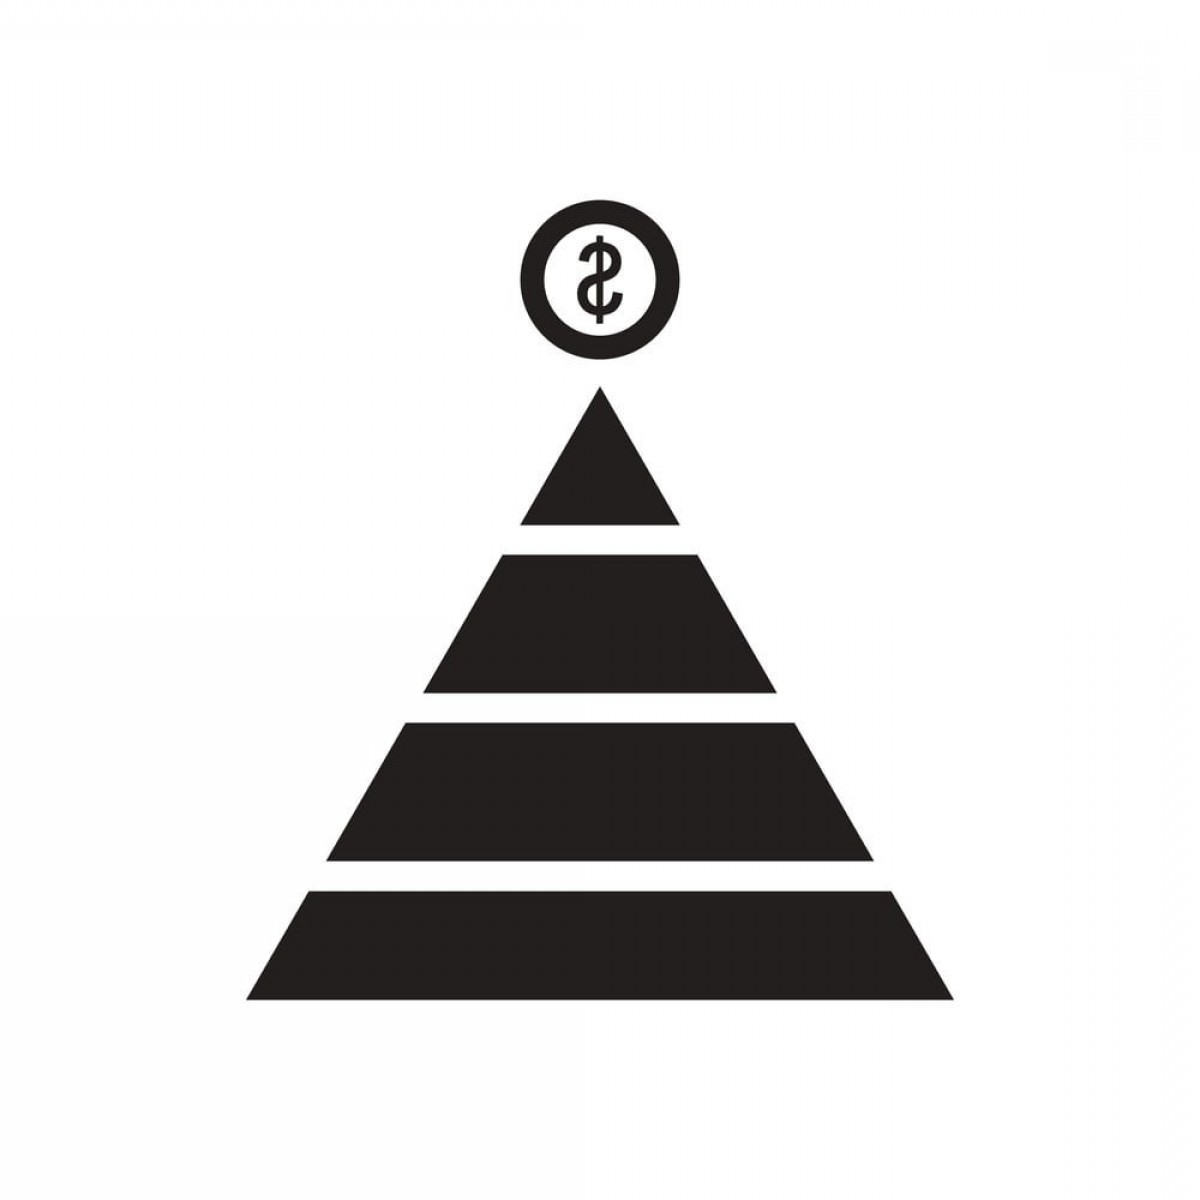 Piramids Vector Art: Flat Icon In Black And White Financial Pyramid Vector Ai Eps File